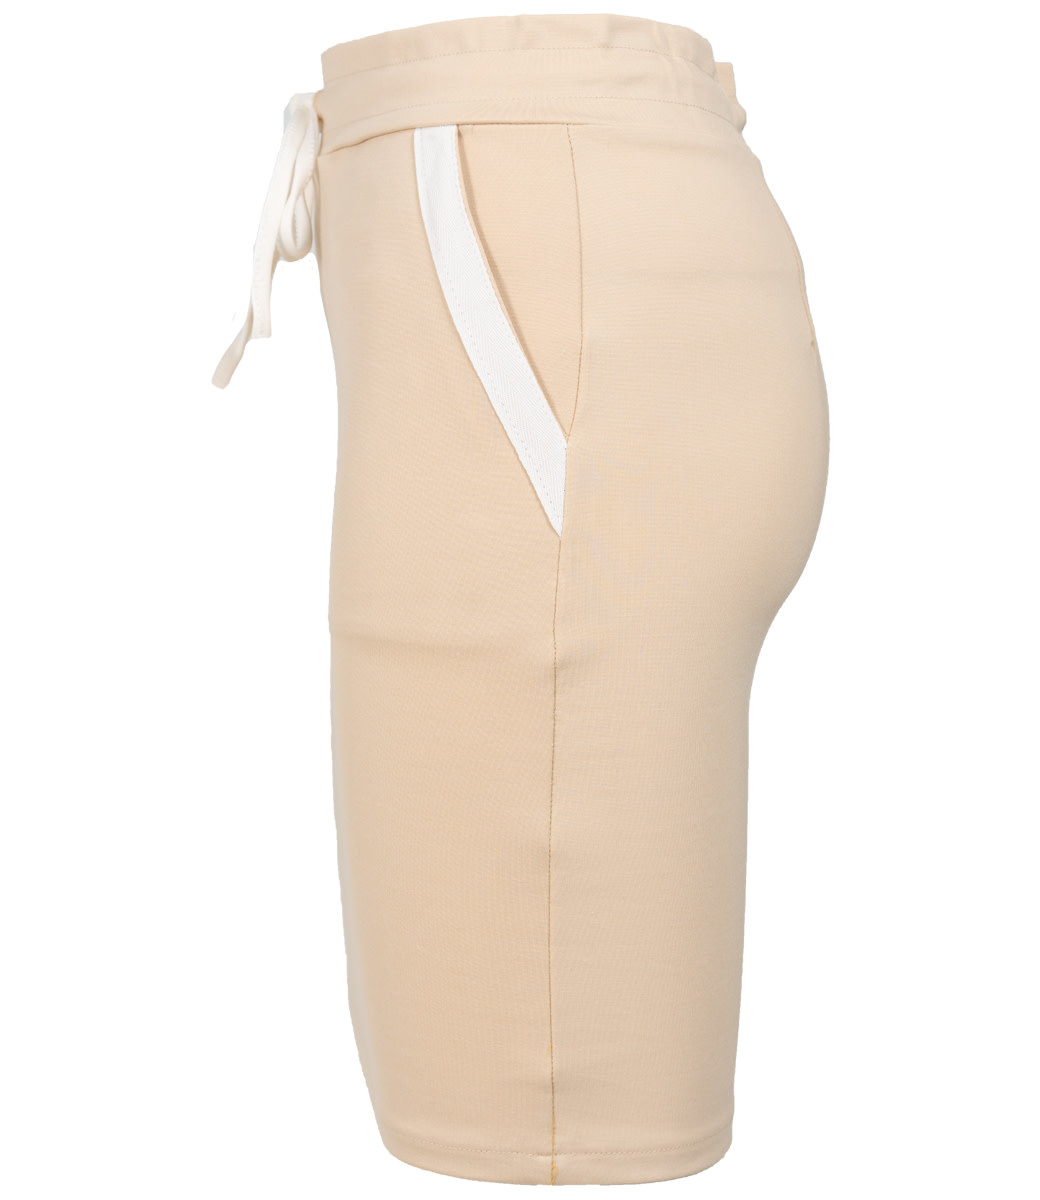 Rebelz Collection Rok beige/wit Mandy